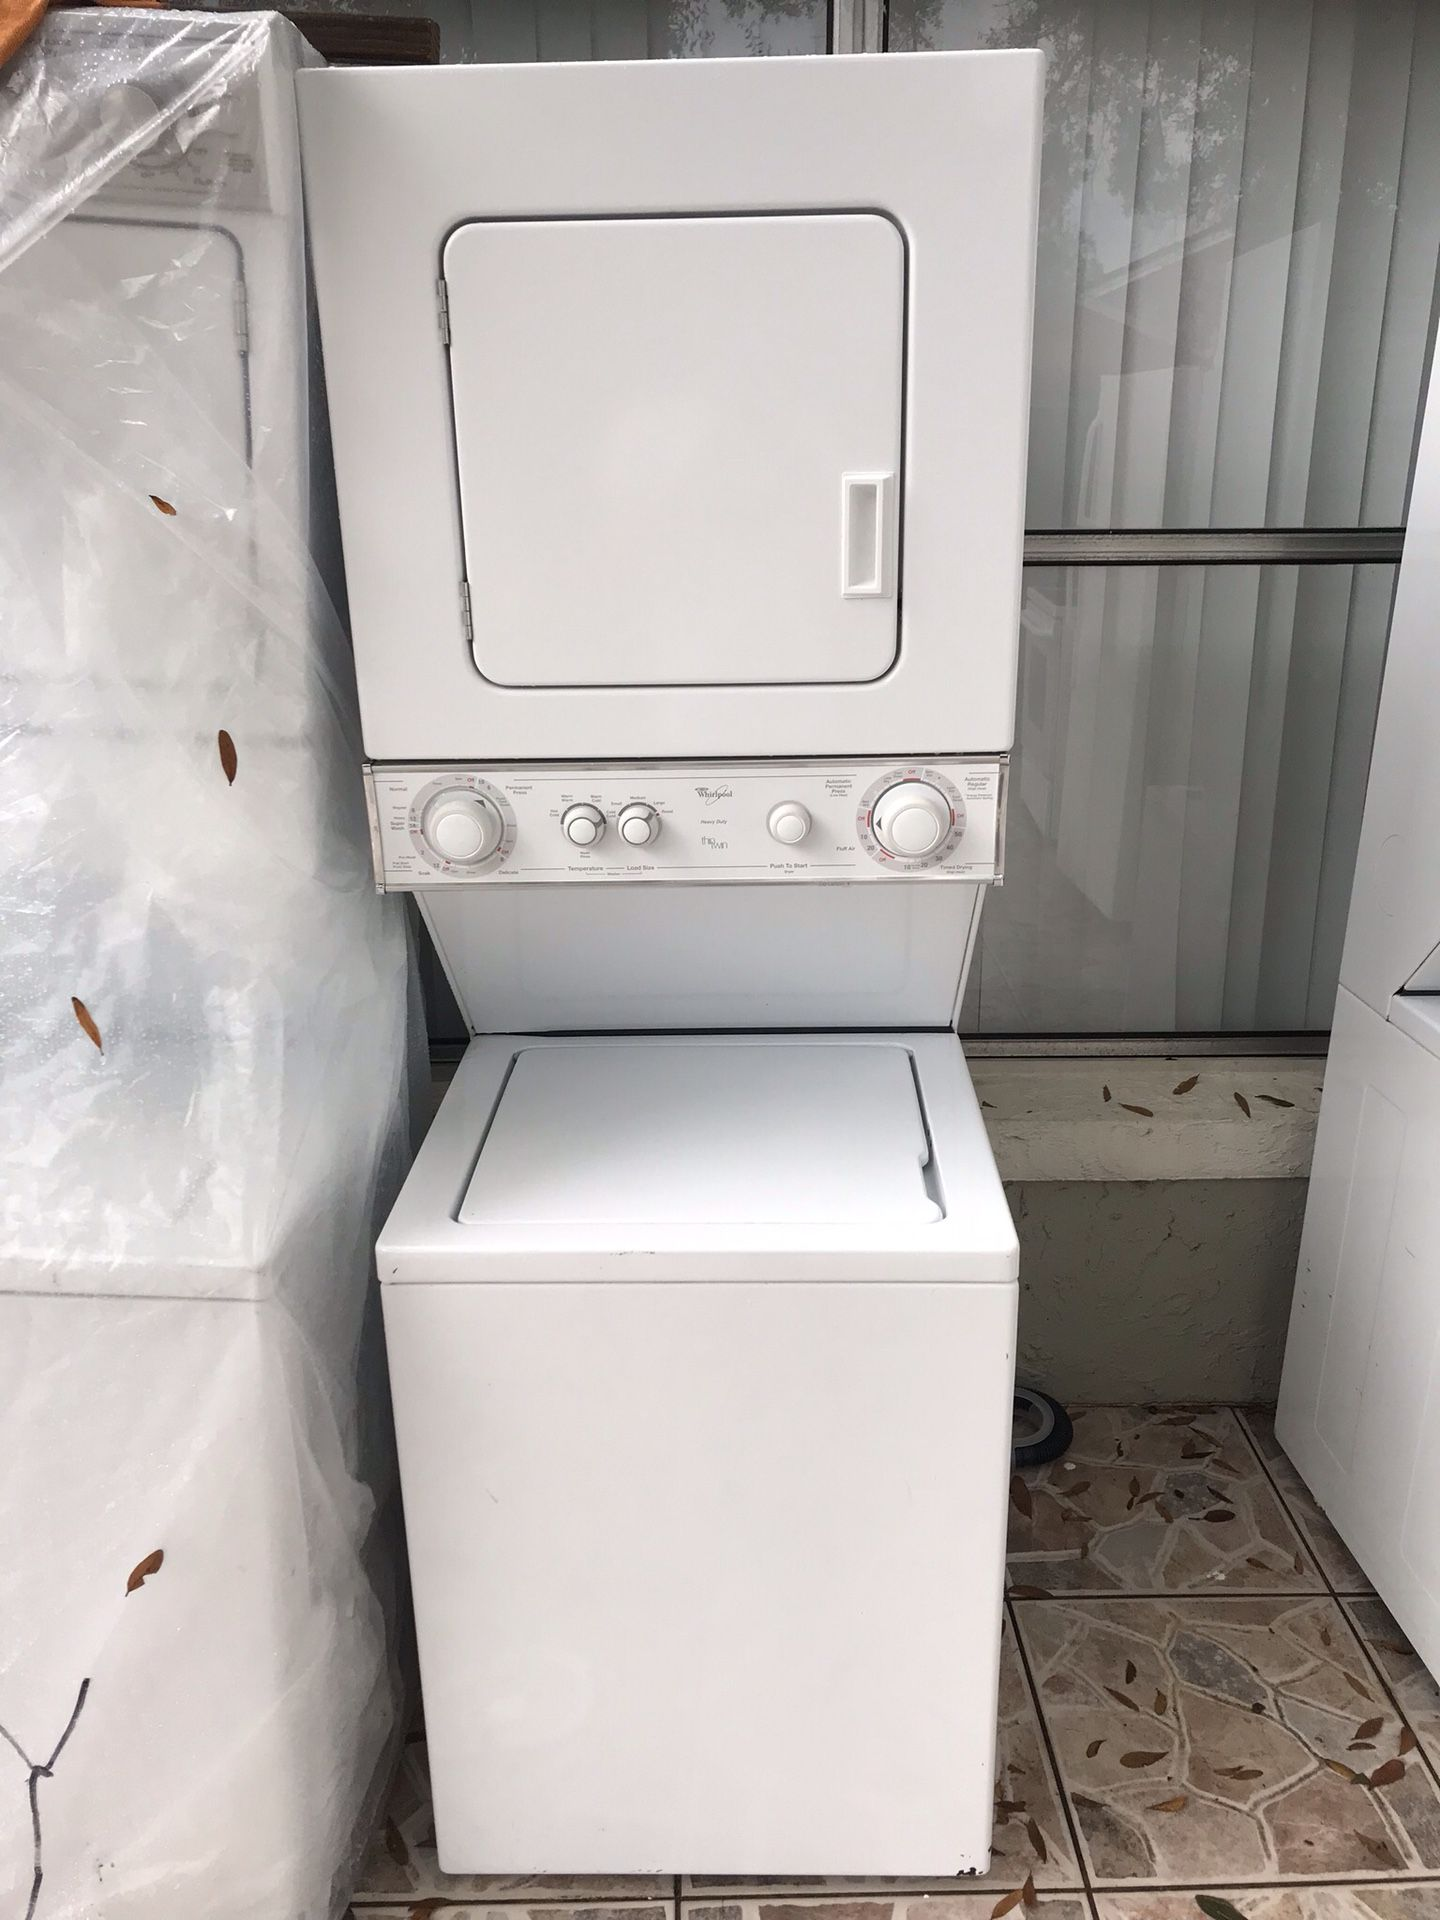 Stackable, washer and dryer white whirlpool for sale $399